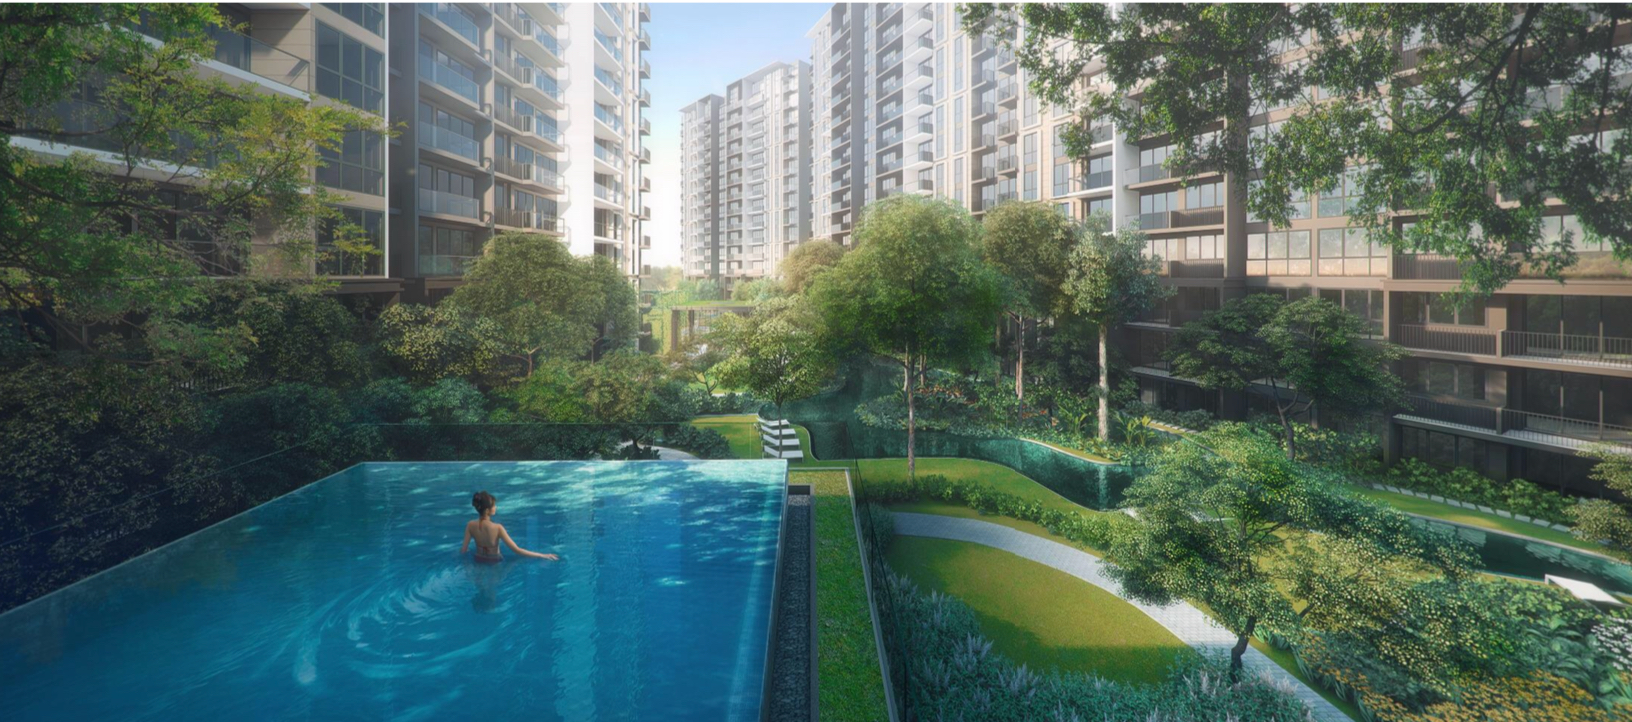 new condominium singapore